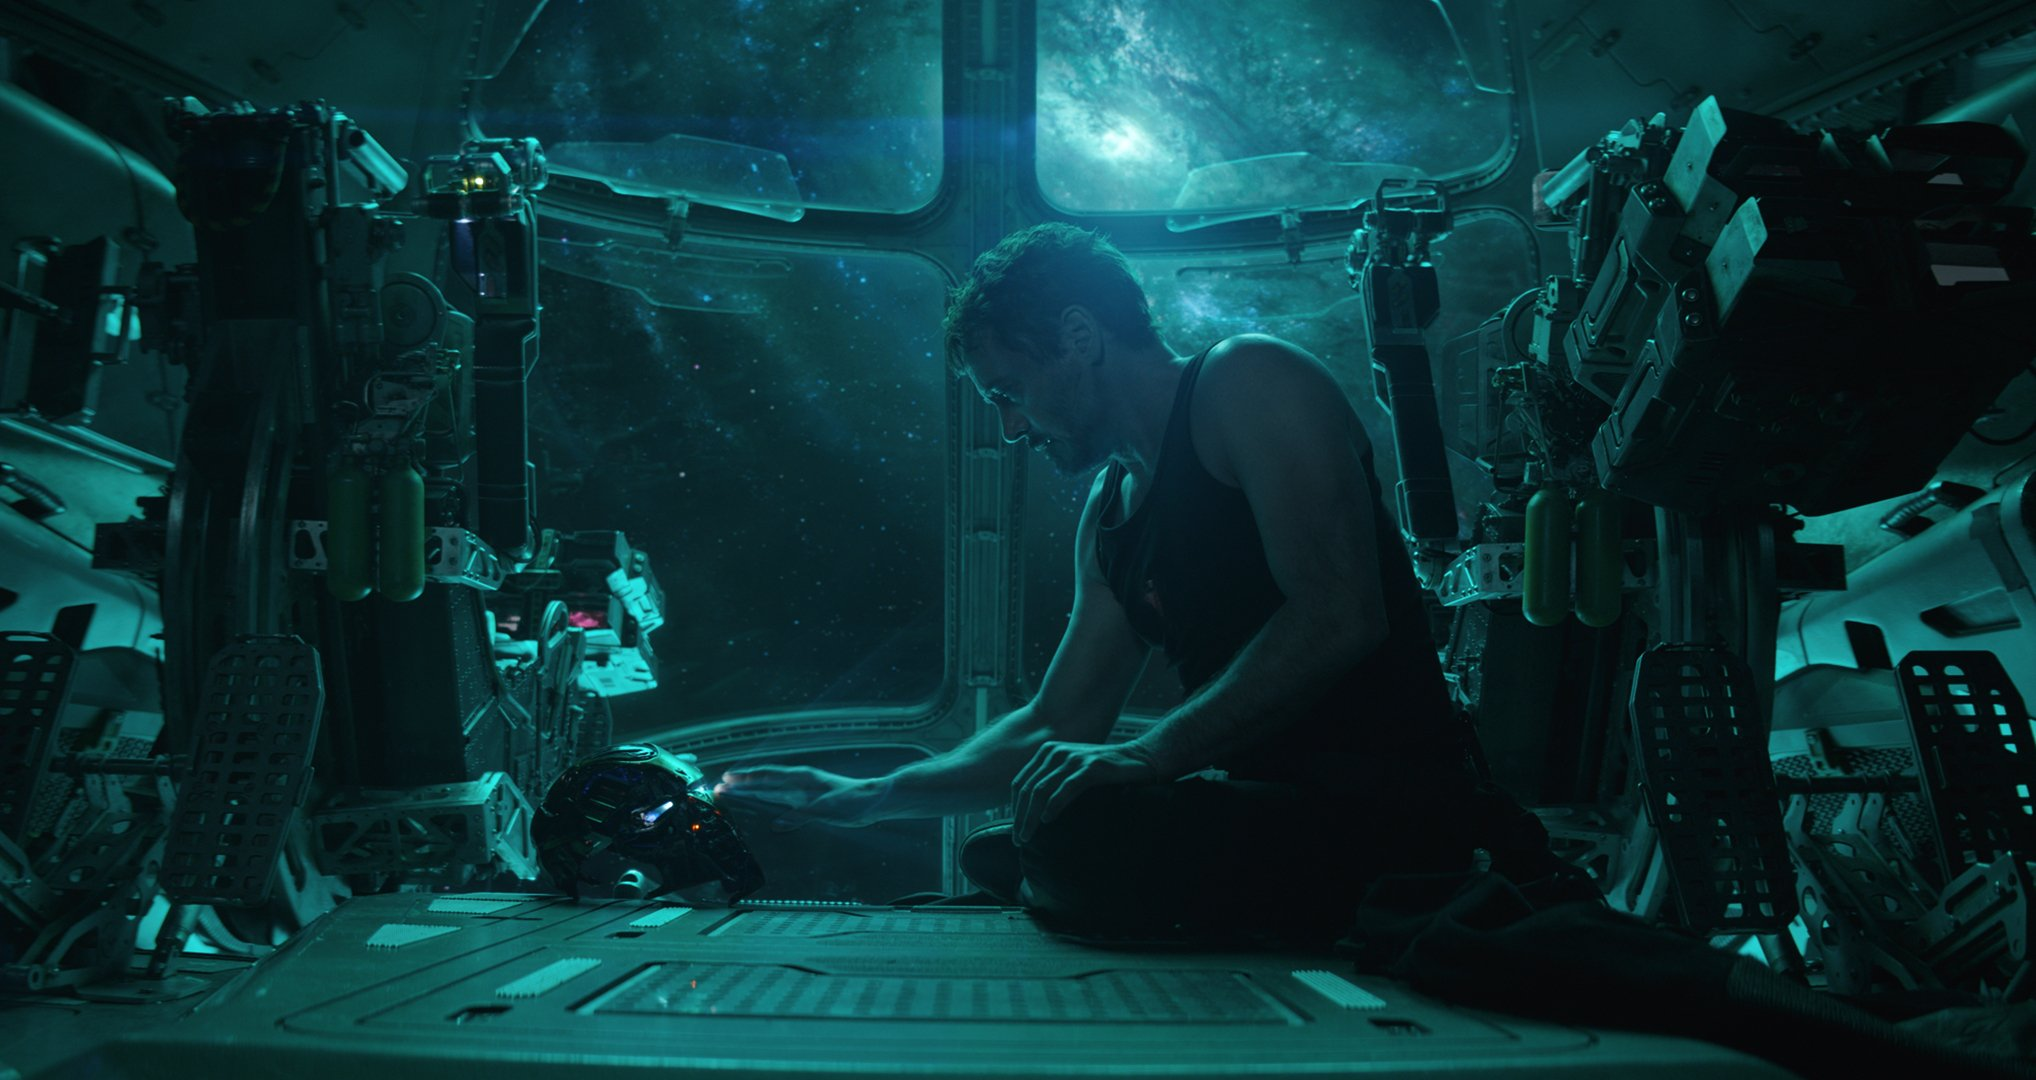 Marvel closes a decade-long story with 'Avengers: Endgame'